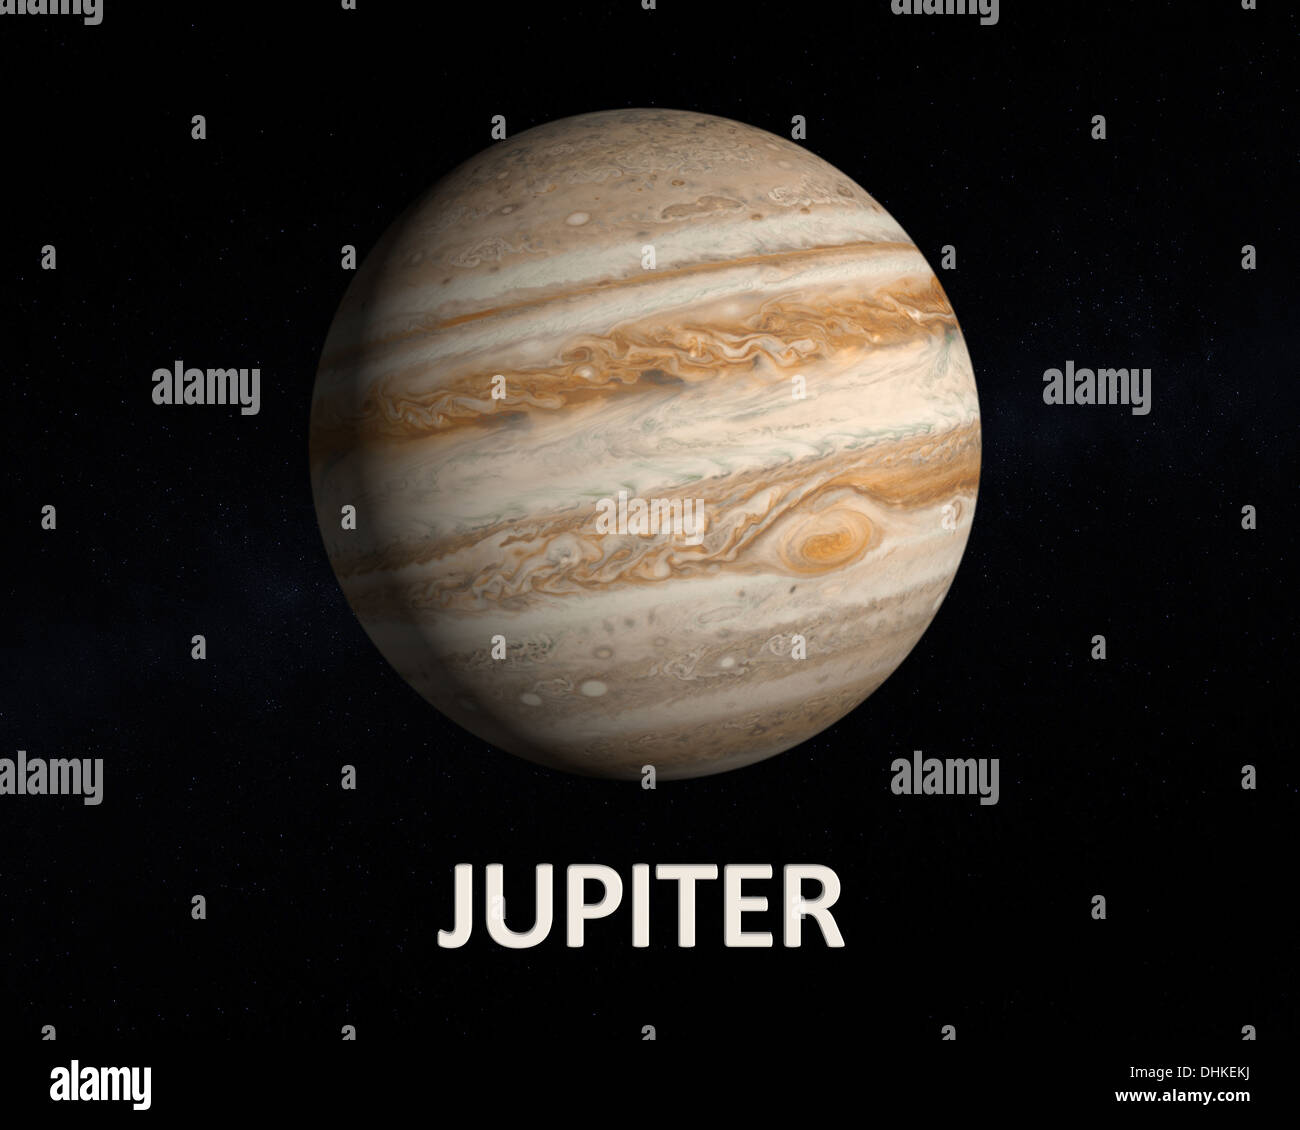 jupiter the gas planet essay Jupiter is the fifth planet from the sun and the largest in the solar system it is a giant planet with a mass one-thousandth that of the sun, but two-and-a-half times that of all the other planets in the solar system combined jupiter and saturn are gas giants the other two giant planets, uranus and neptune, are ice giants.